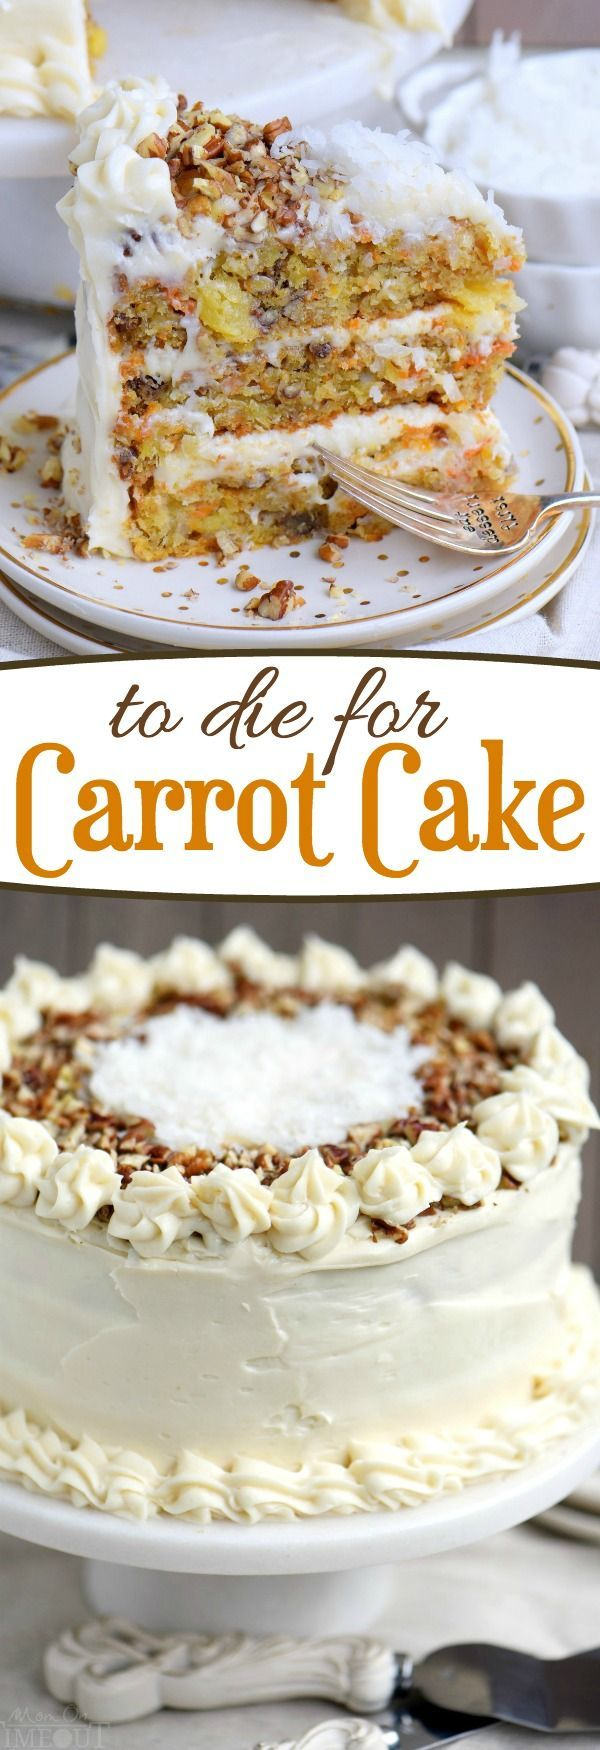 This To Die For Carrot Cake receives rave reviews for it's unbelievable moistness and flavor! Truly the BEST CARROT CAKE you'll ever try! So e... - -